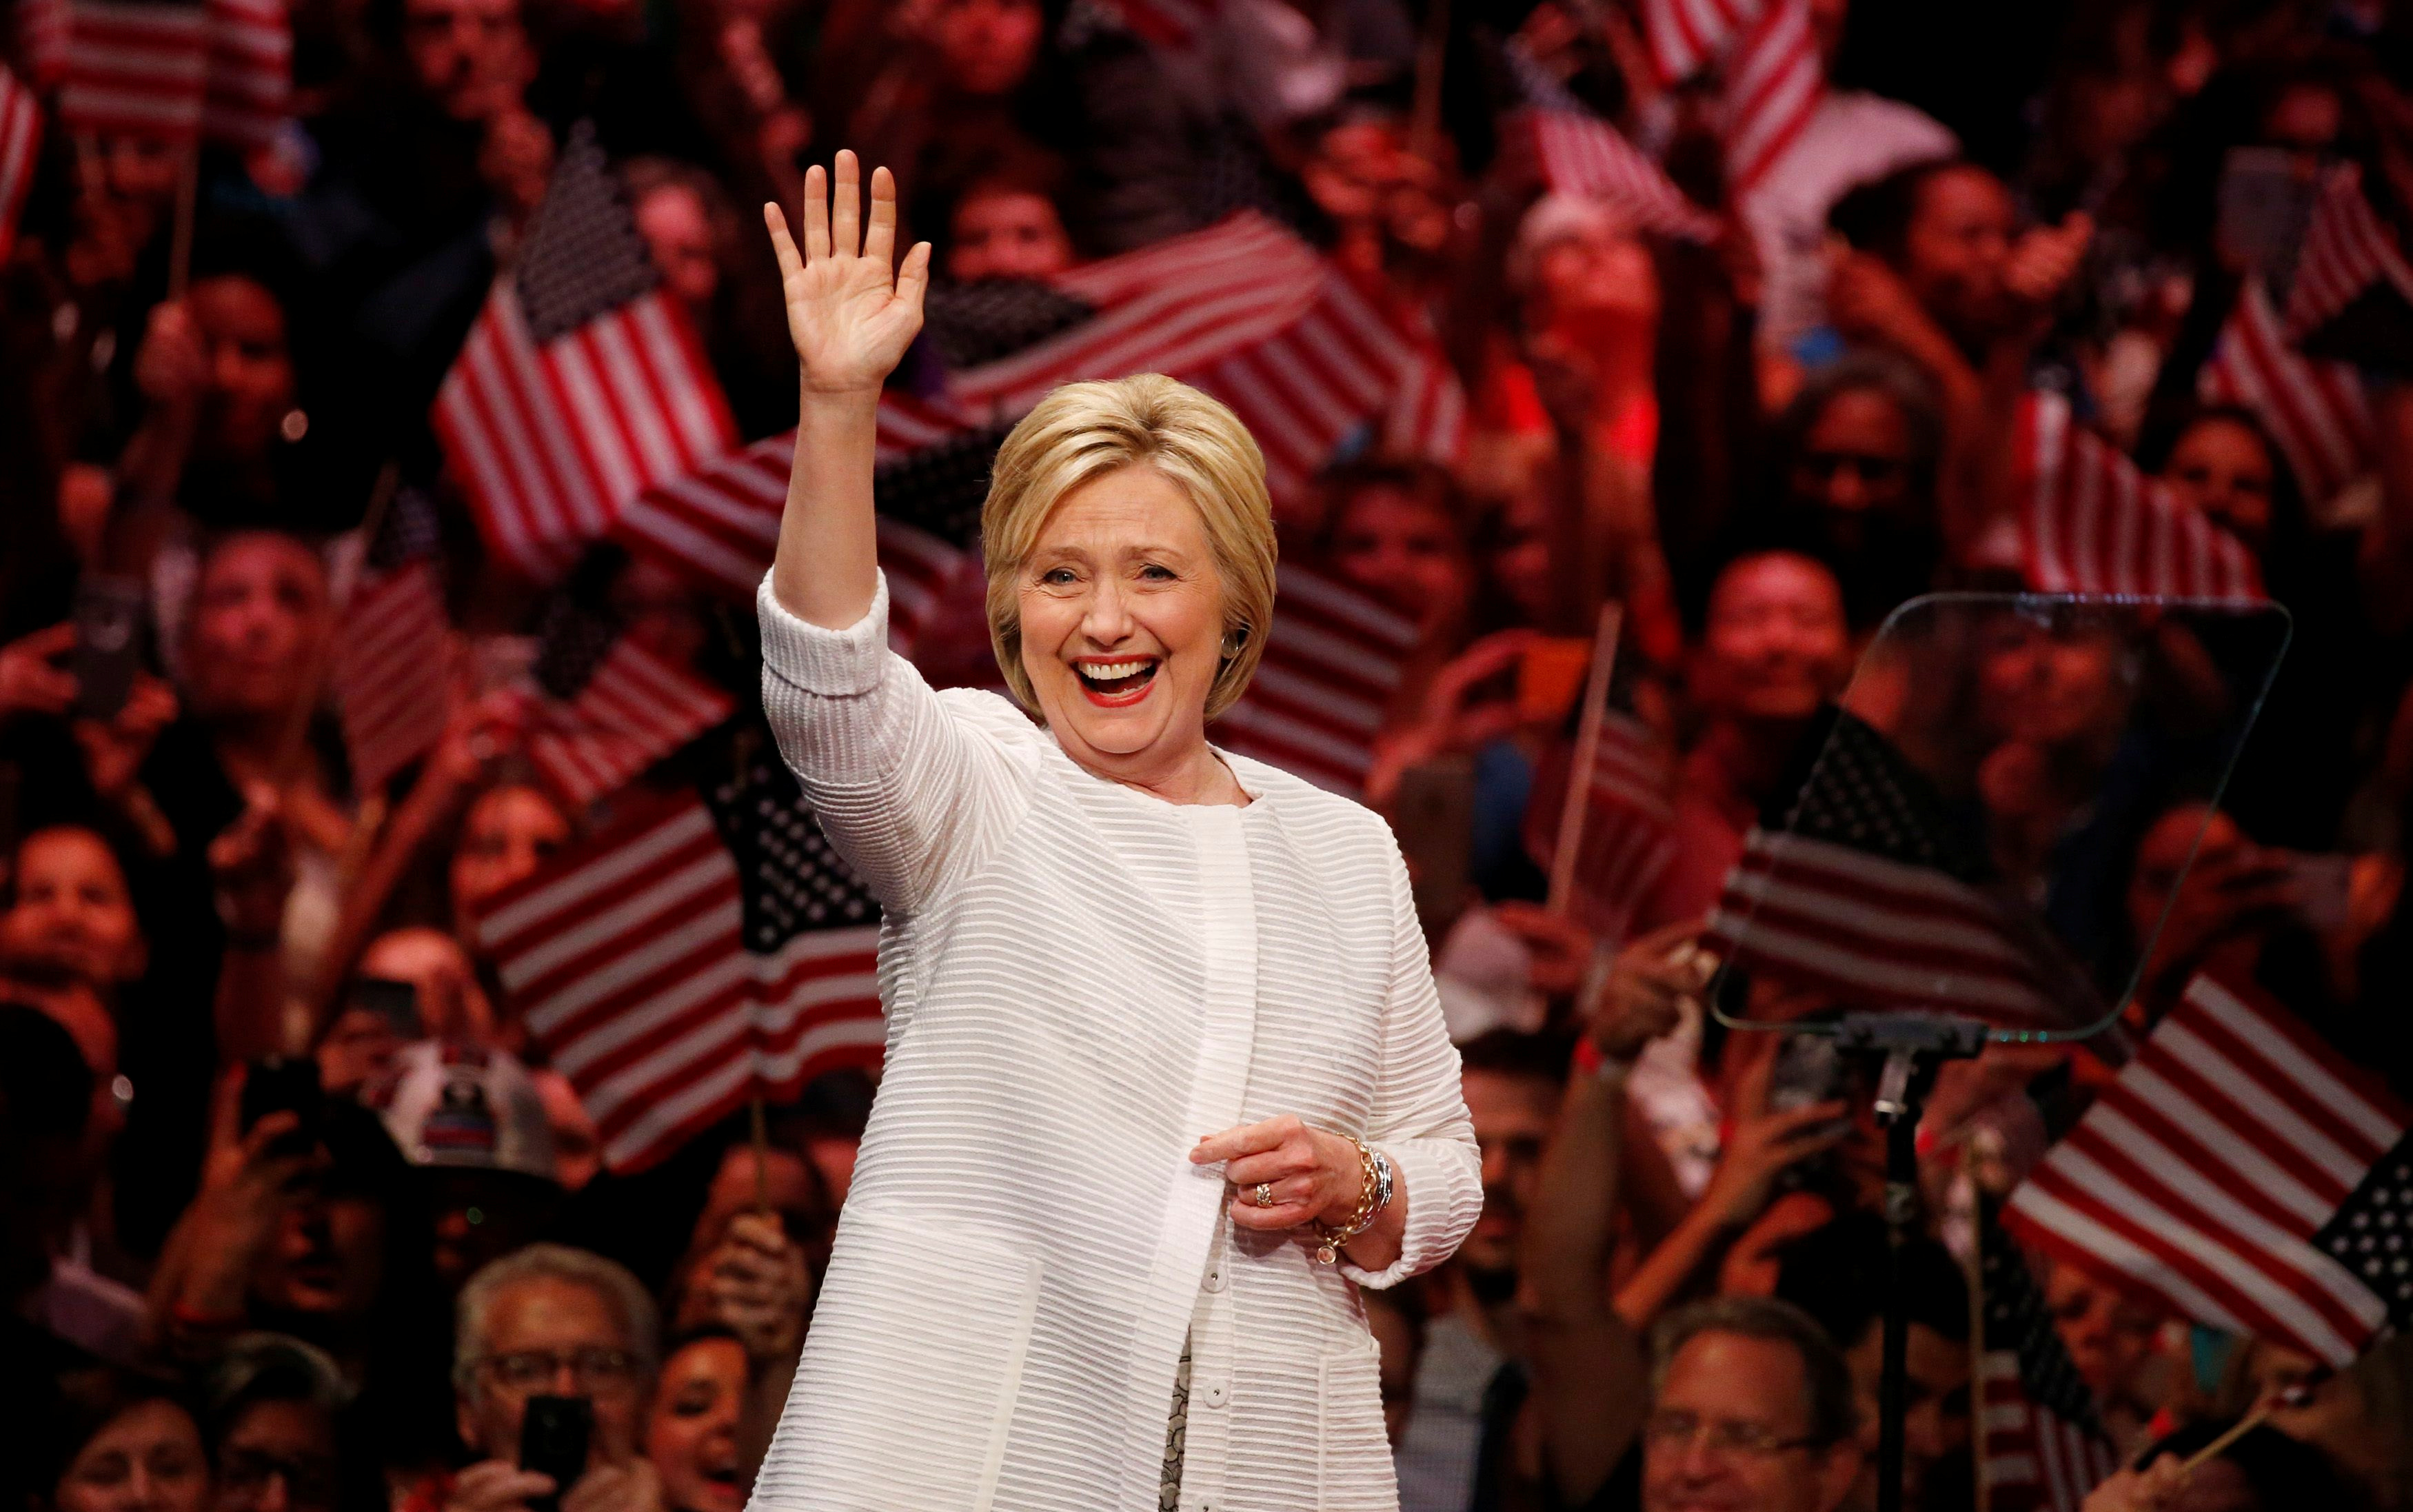 Democratic presidential candidate Hillary Clinton waves as she arrives to speak during her California primary night rally held in the Brooklyn borough of New York, June 7, 2016.